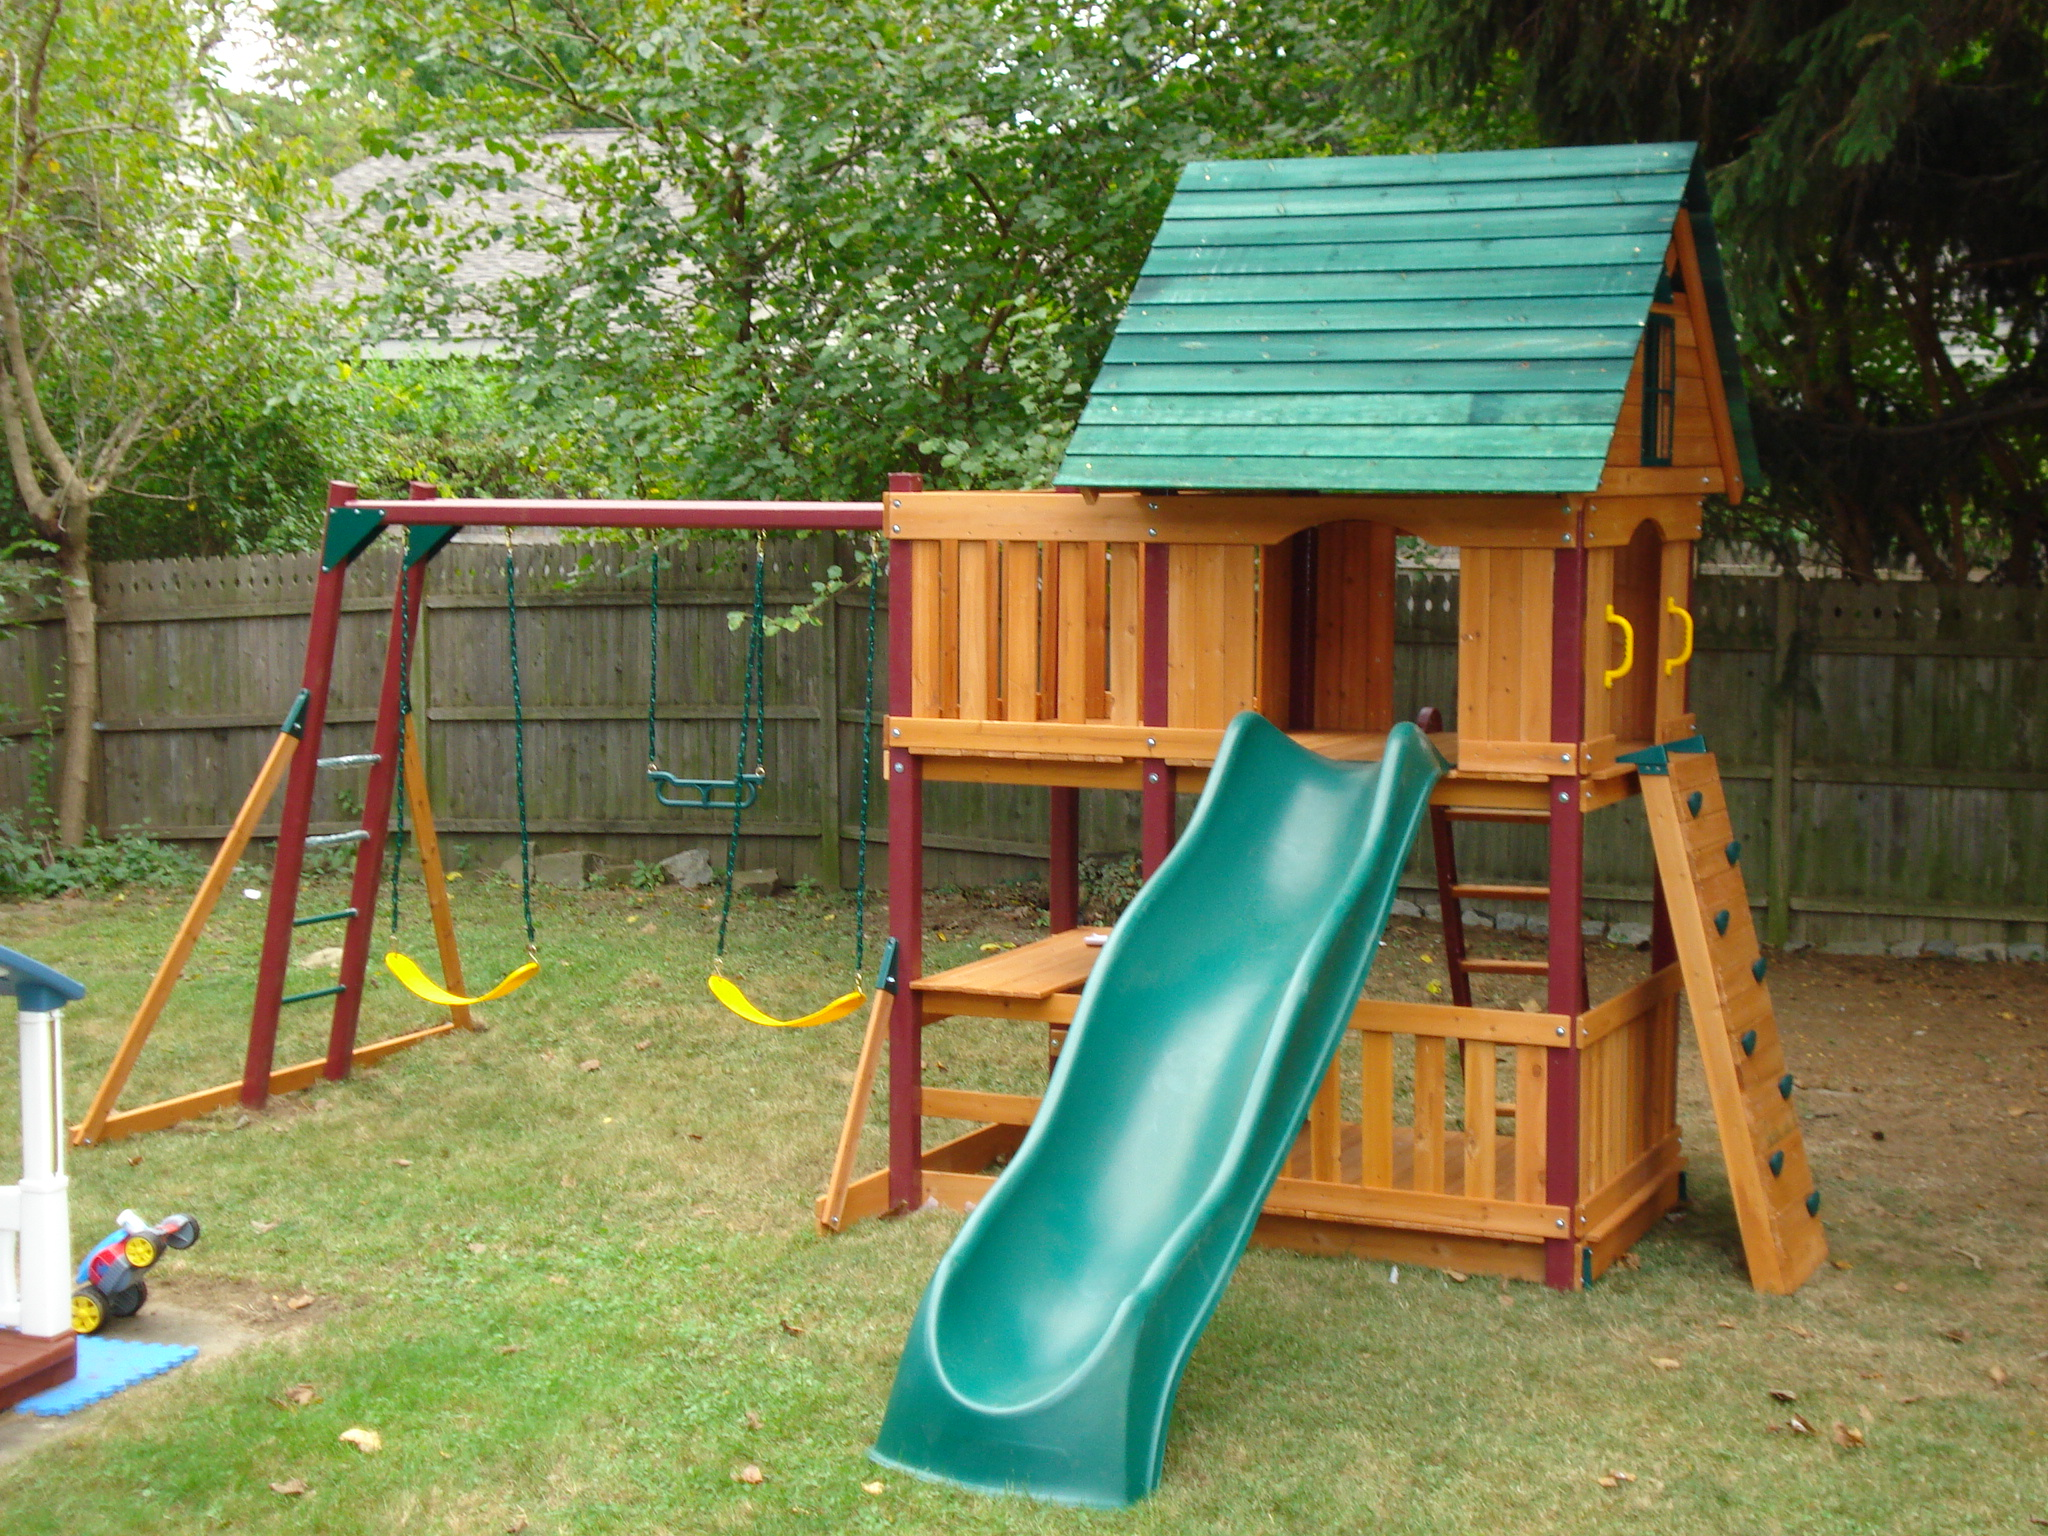 premium installer all summit american about swing playset meridian cedar nj installation costco atlantis palace lifetime davenport set